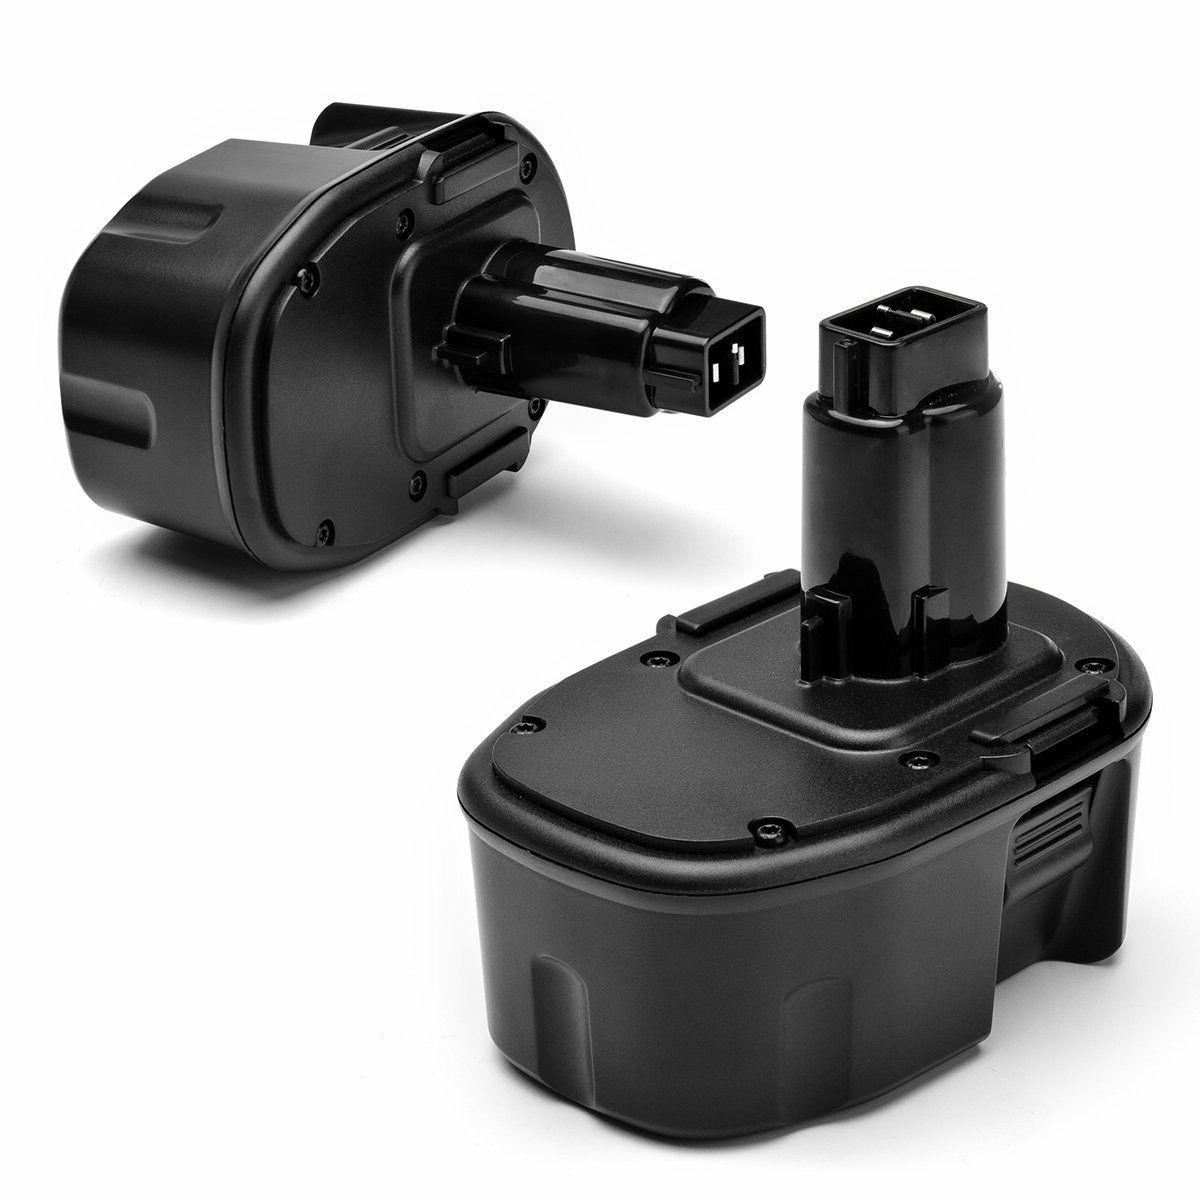 2 Packs 3.0Ah 14.4 Volt NI-MH Rechargeable Replacement Batte